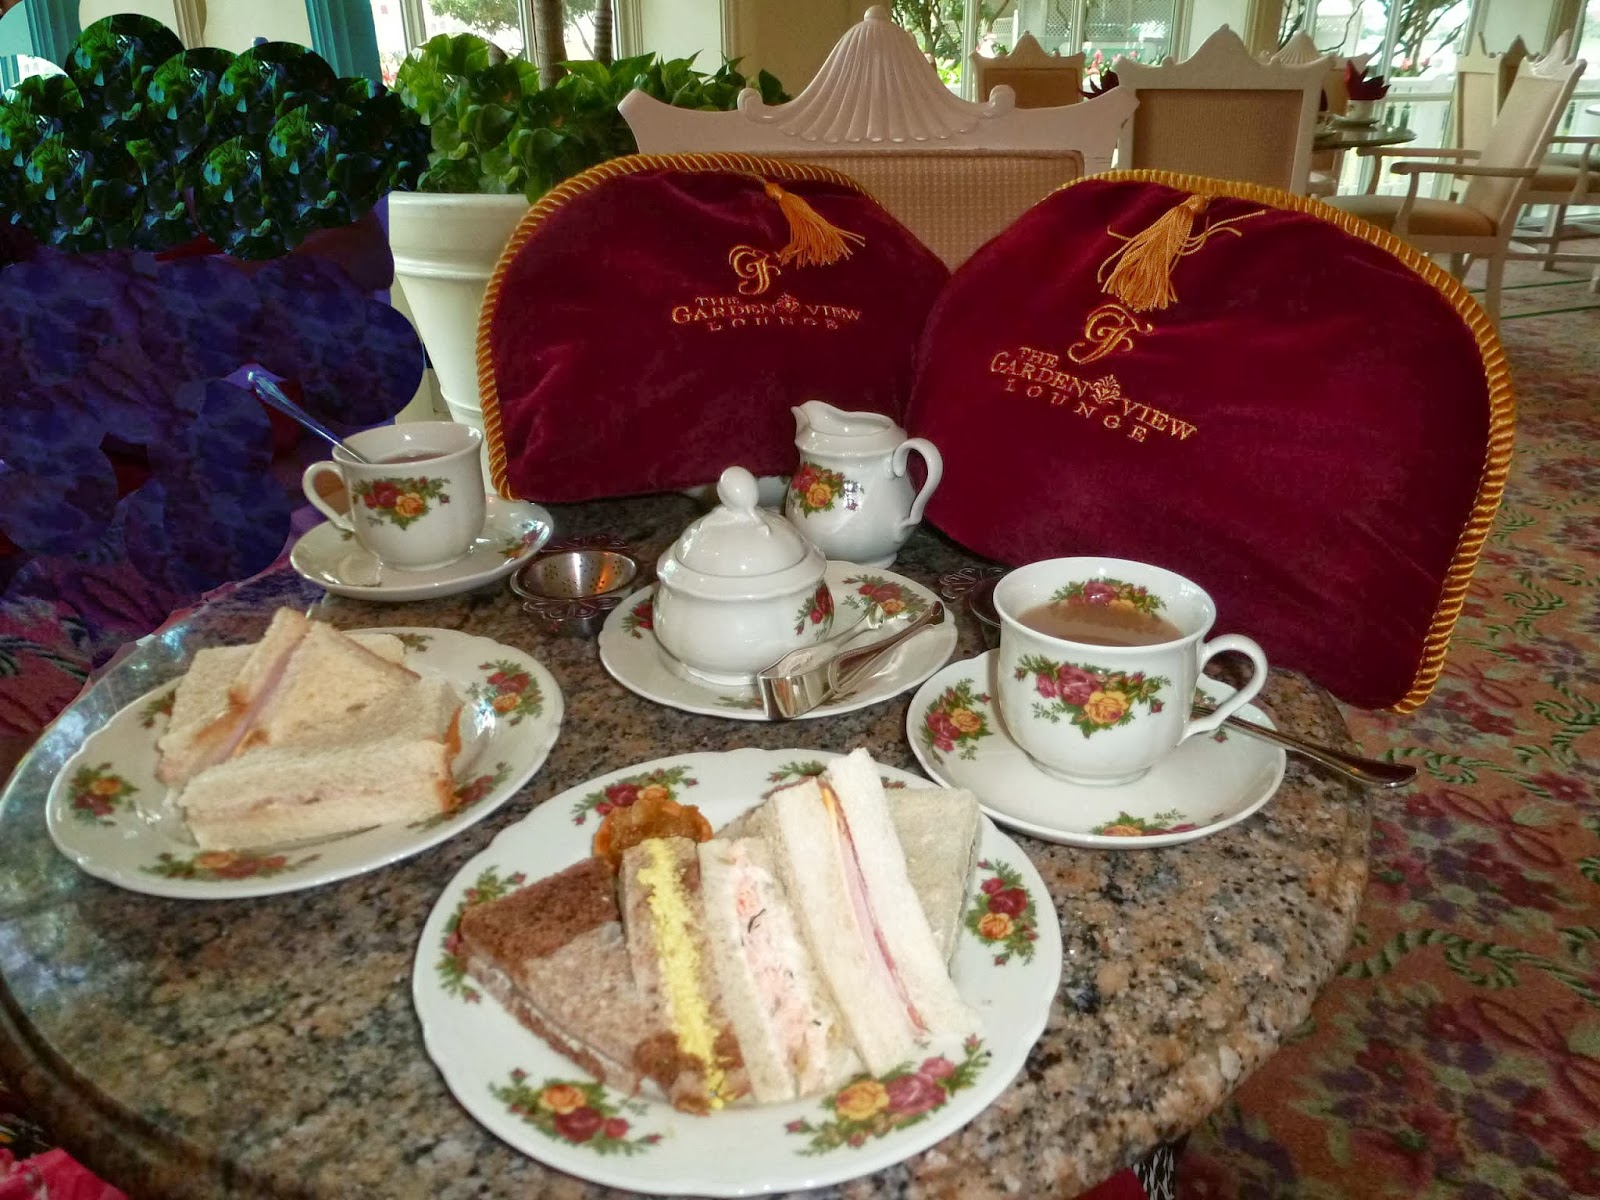 Disney Dining High Tea Afternoon Tea At Grand Floridian 39 S Garden View Tea Room Tips From